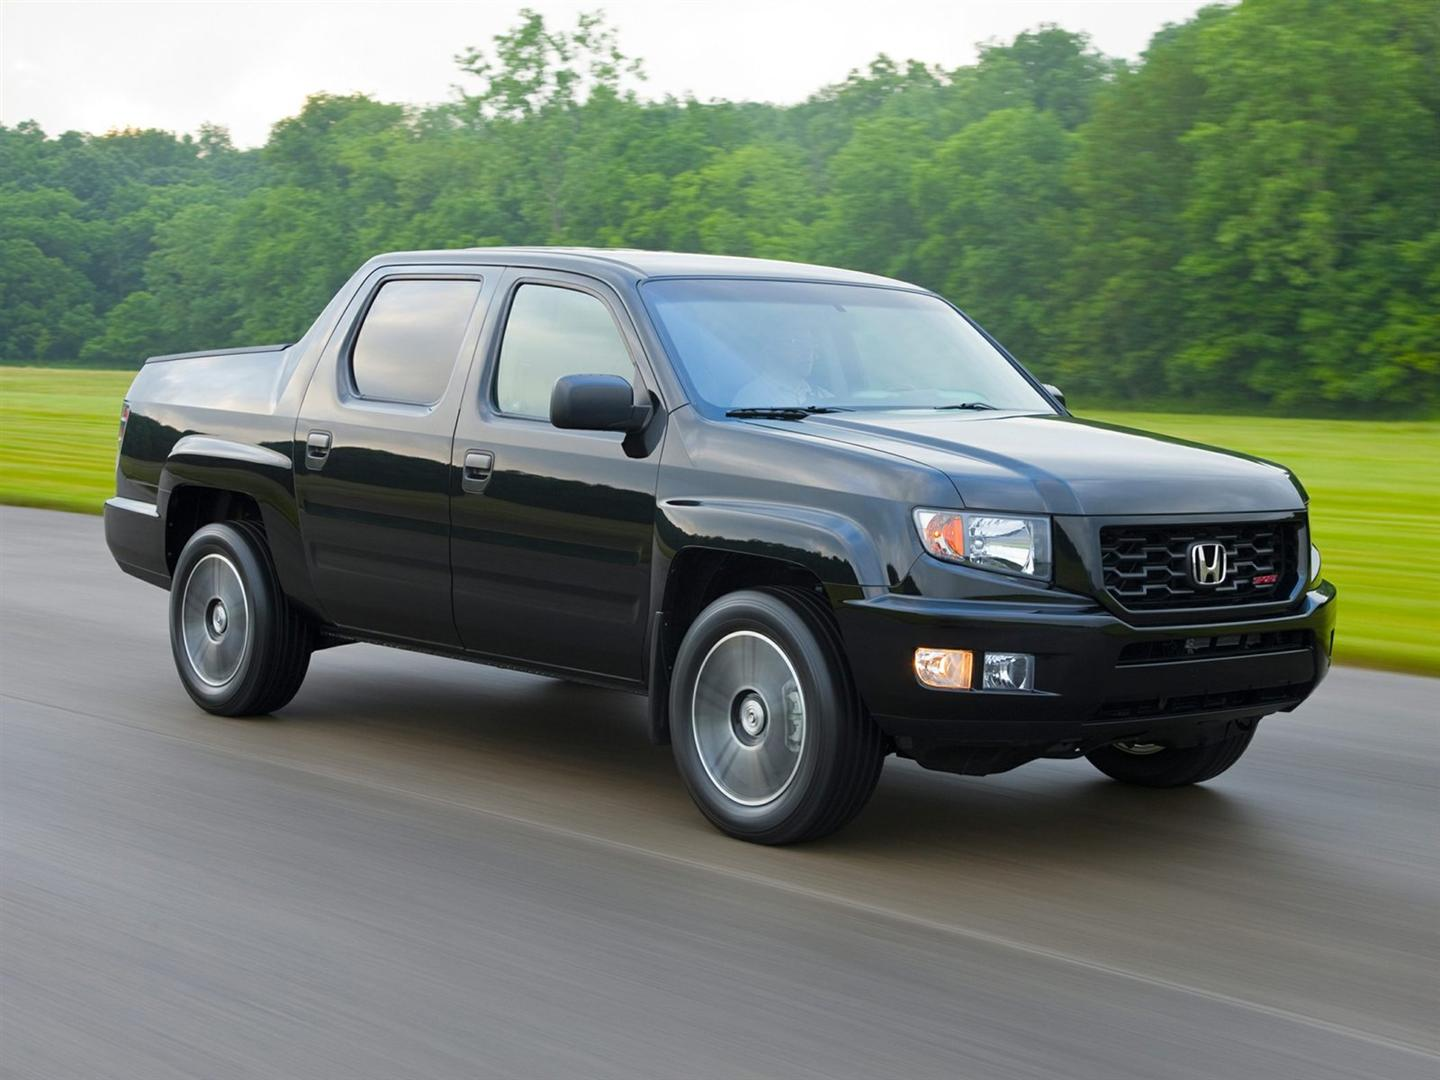 2018 Honda Ridgeline Hybrid Black Color Pictures